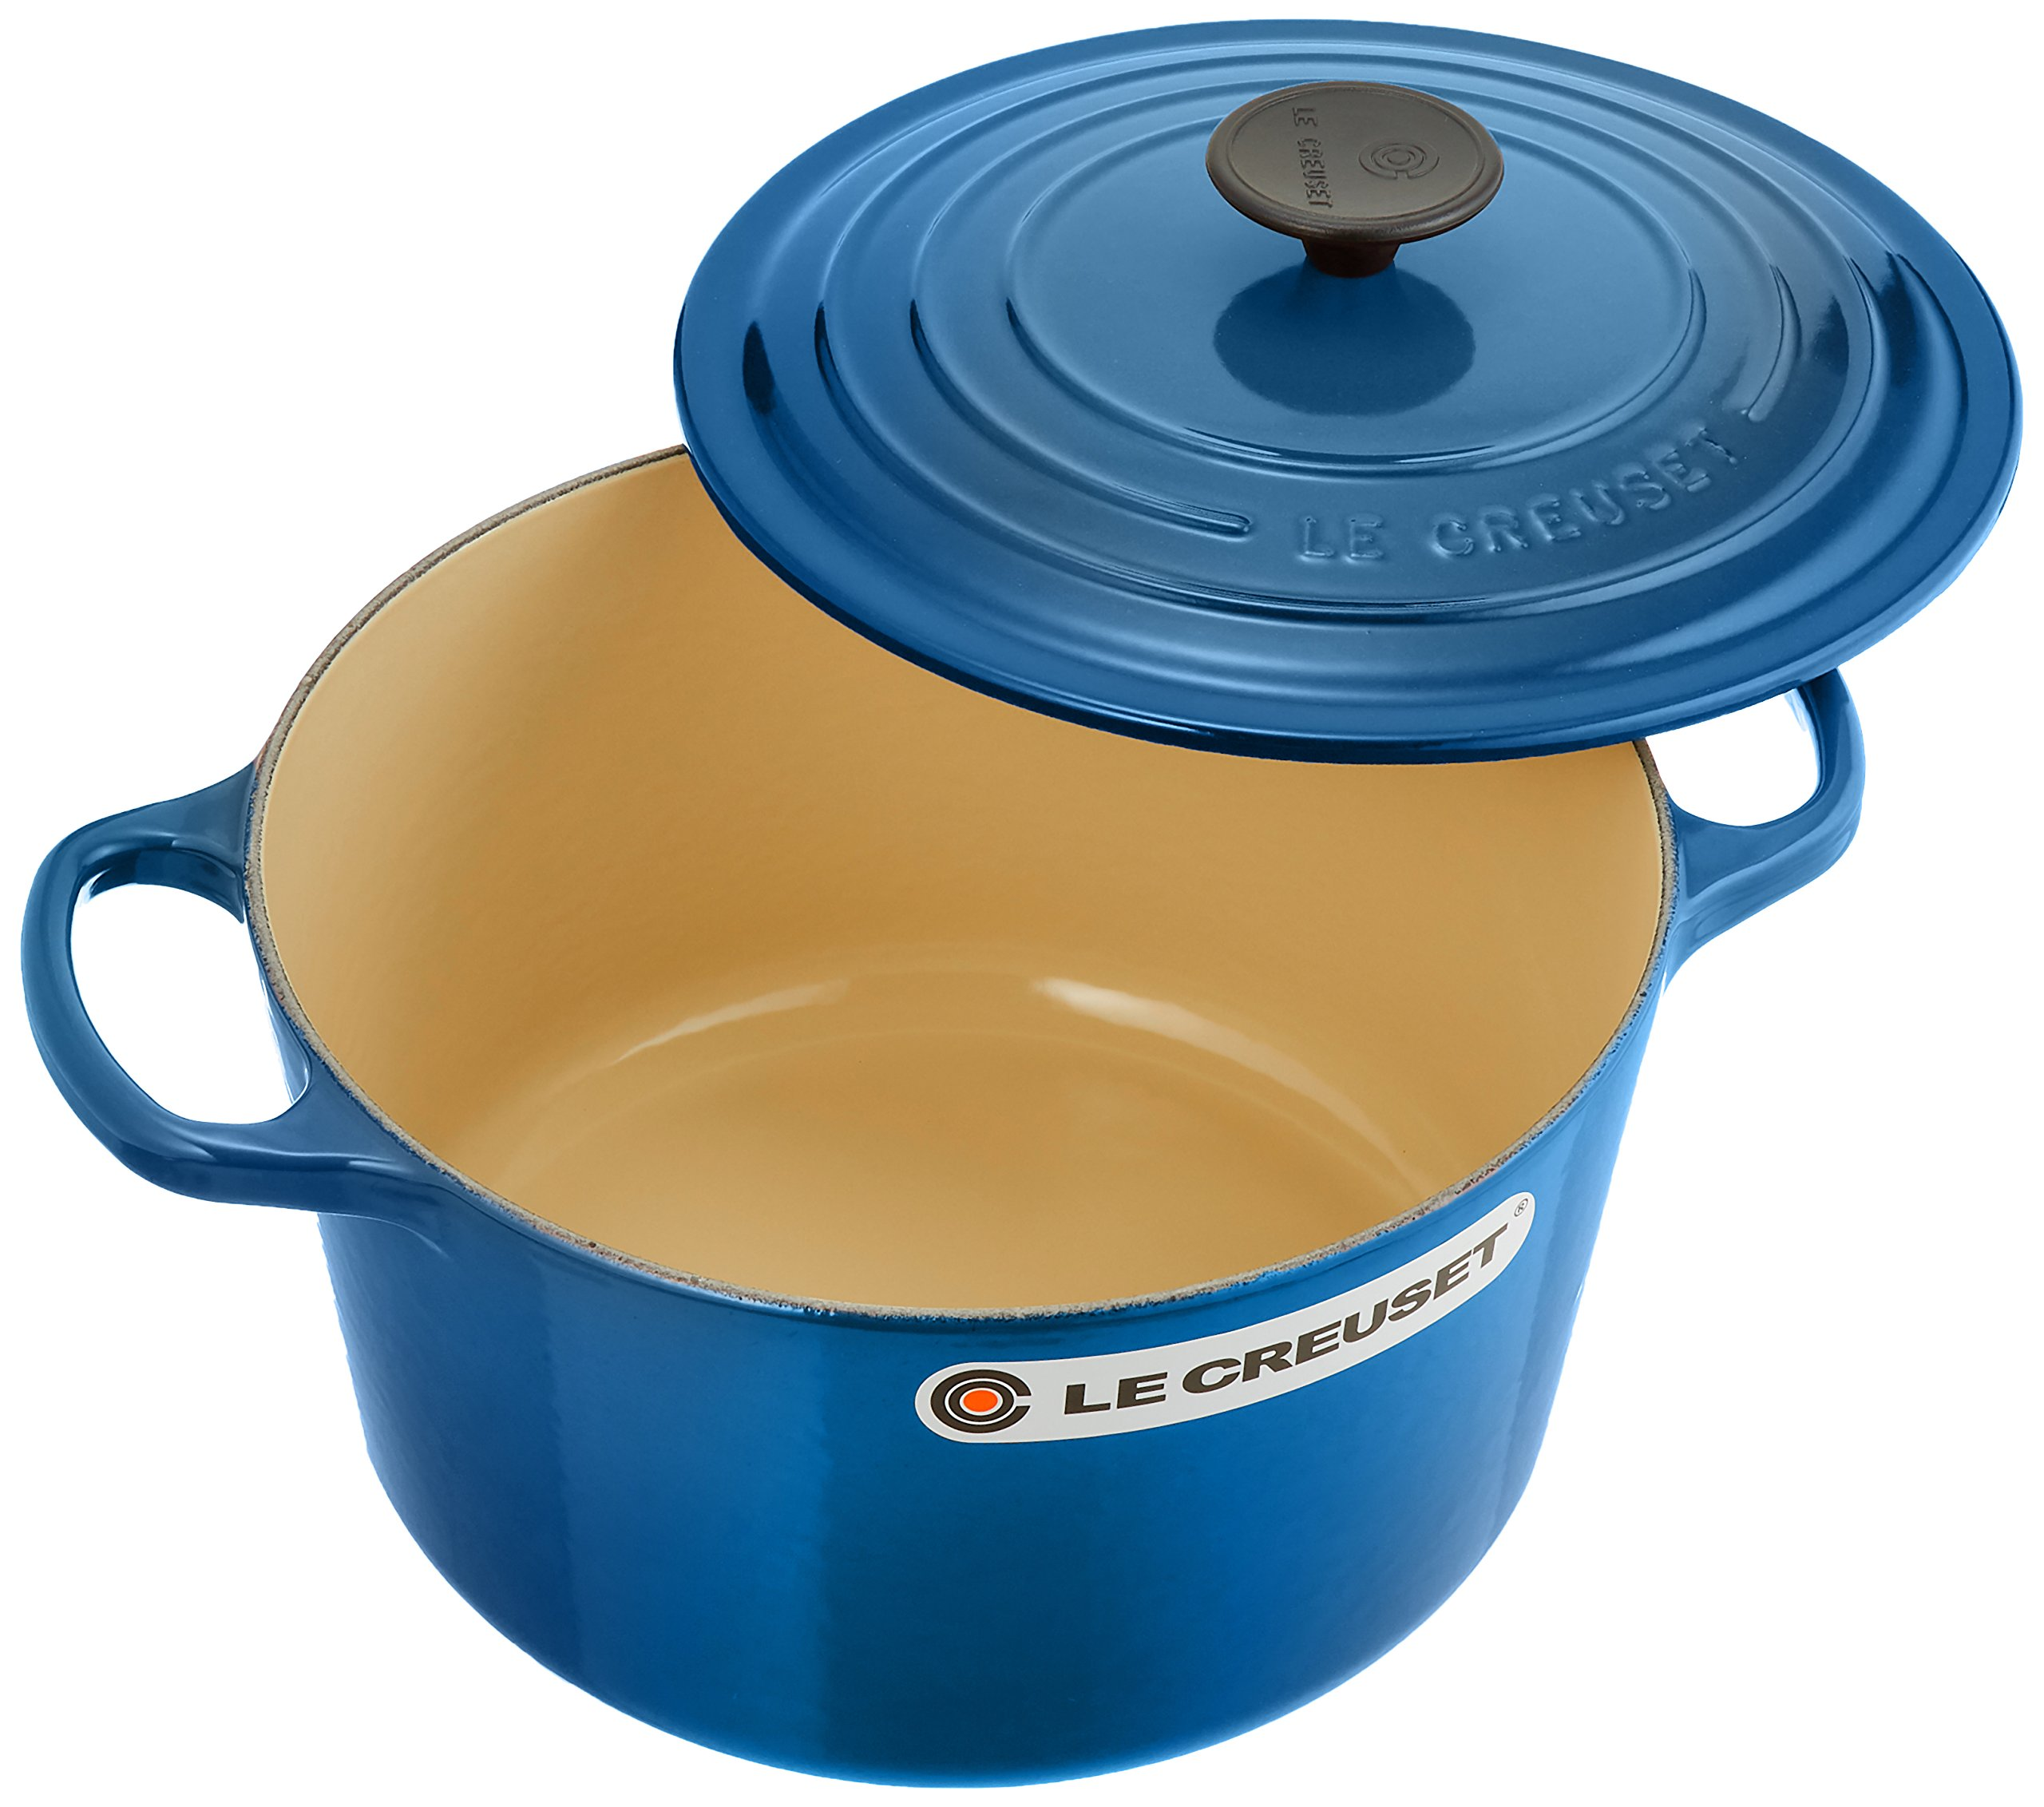 Le Creuset of America Cast Iron Cookware Round Dutch Oven, 5.25Qt, Marseille by Le Creuset of America